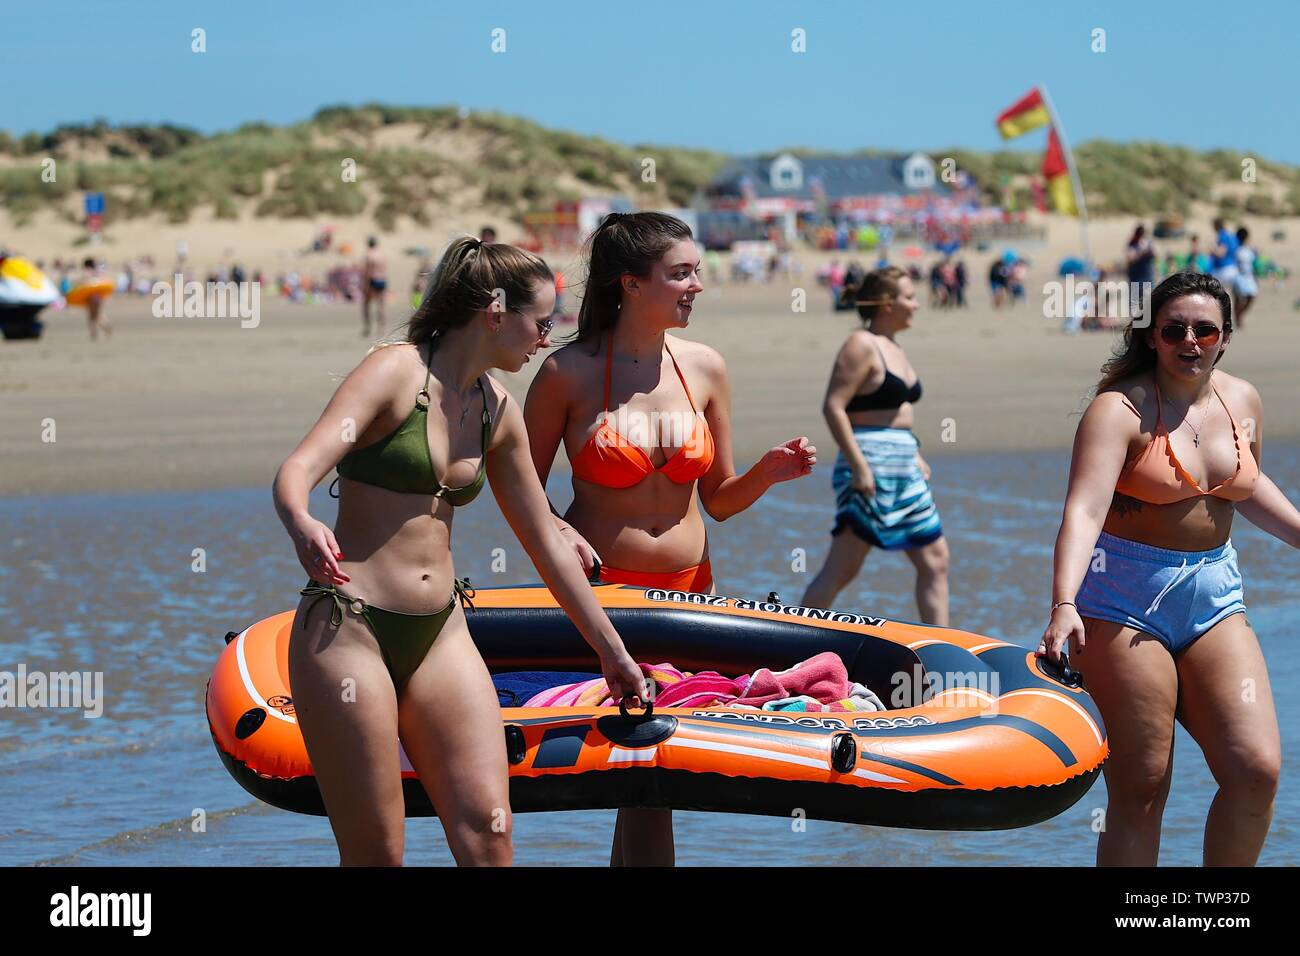 Camber, East Sussex, UK. 22nd June, 2019. A beautiful sunny start to the weekend in Camber, East Sussex as people arrive to the Camber Sands beach to enjoy the warm weather. A group of three young women carrying an inflatable dinghy boat along the beach. Credit: Paul Lawrenson 2019, Photo Credit: Paul Lawrenson/Alamy Live News Stock Photo